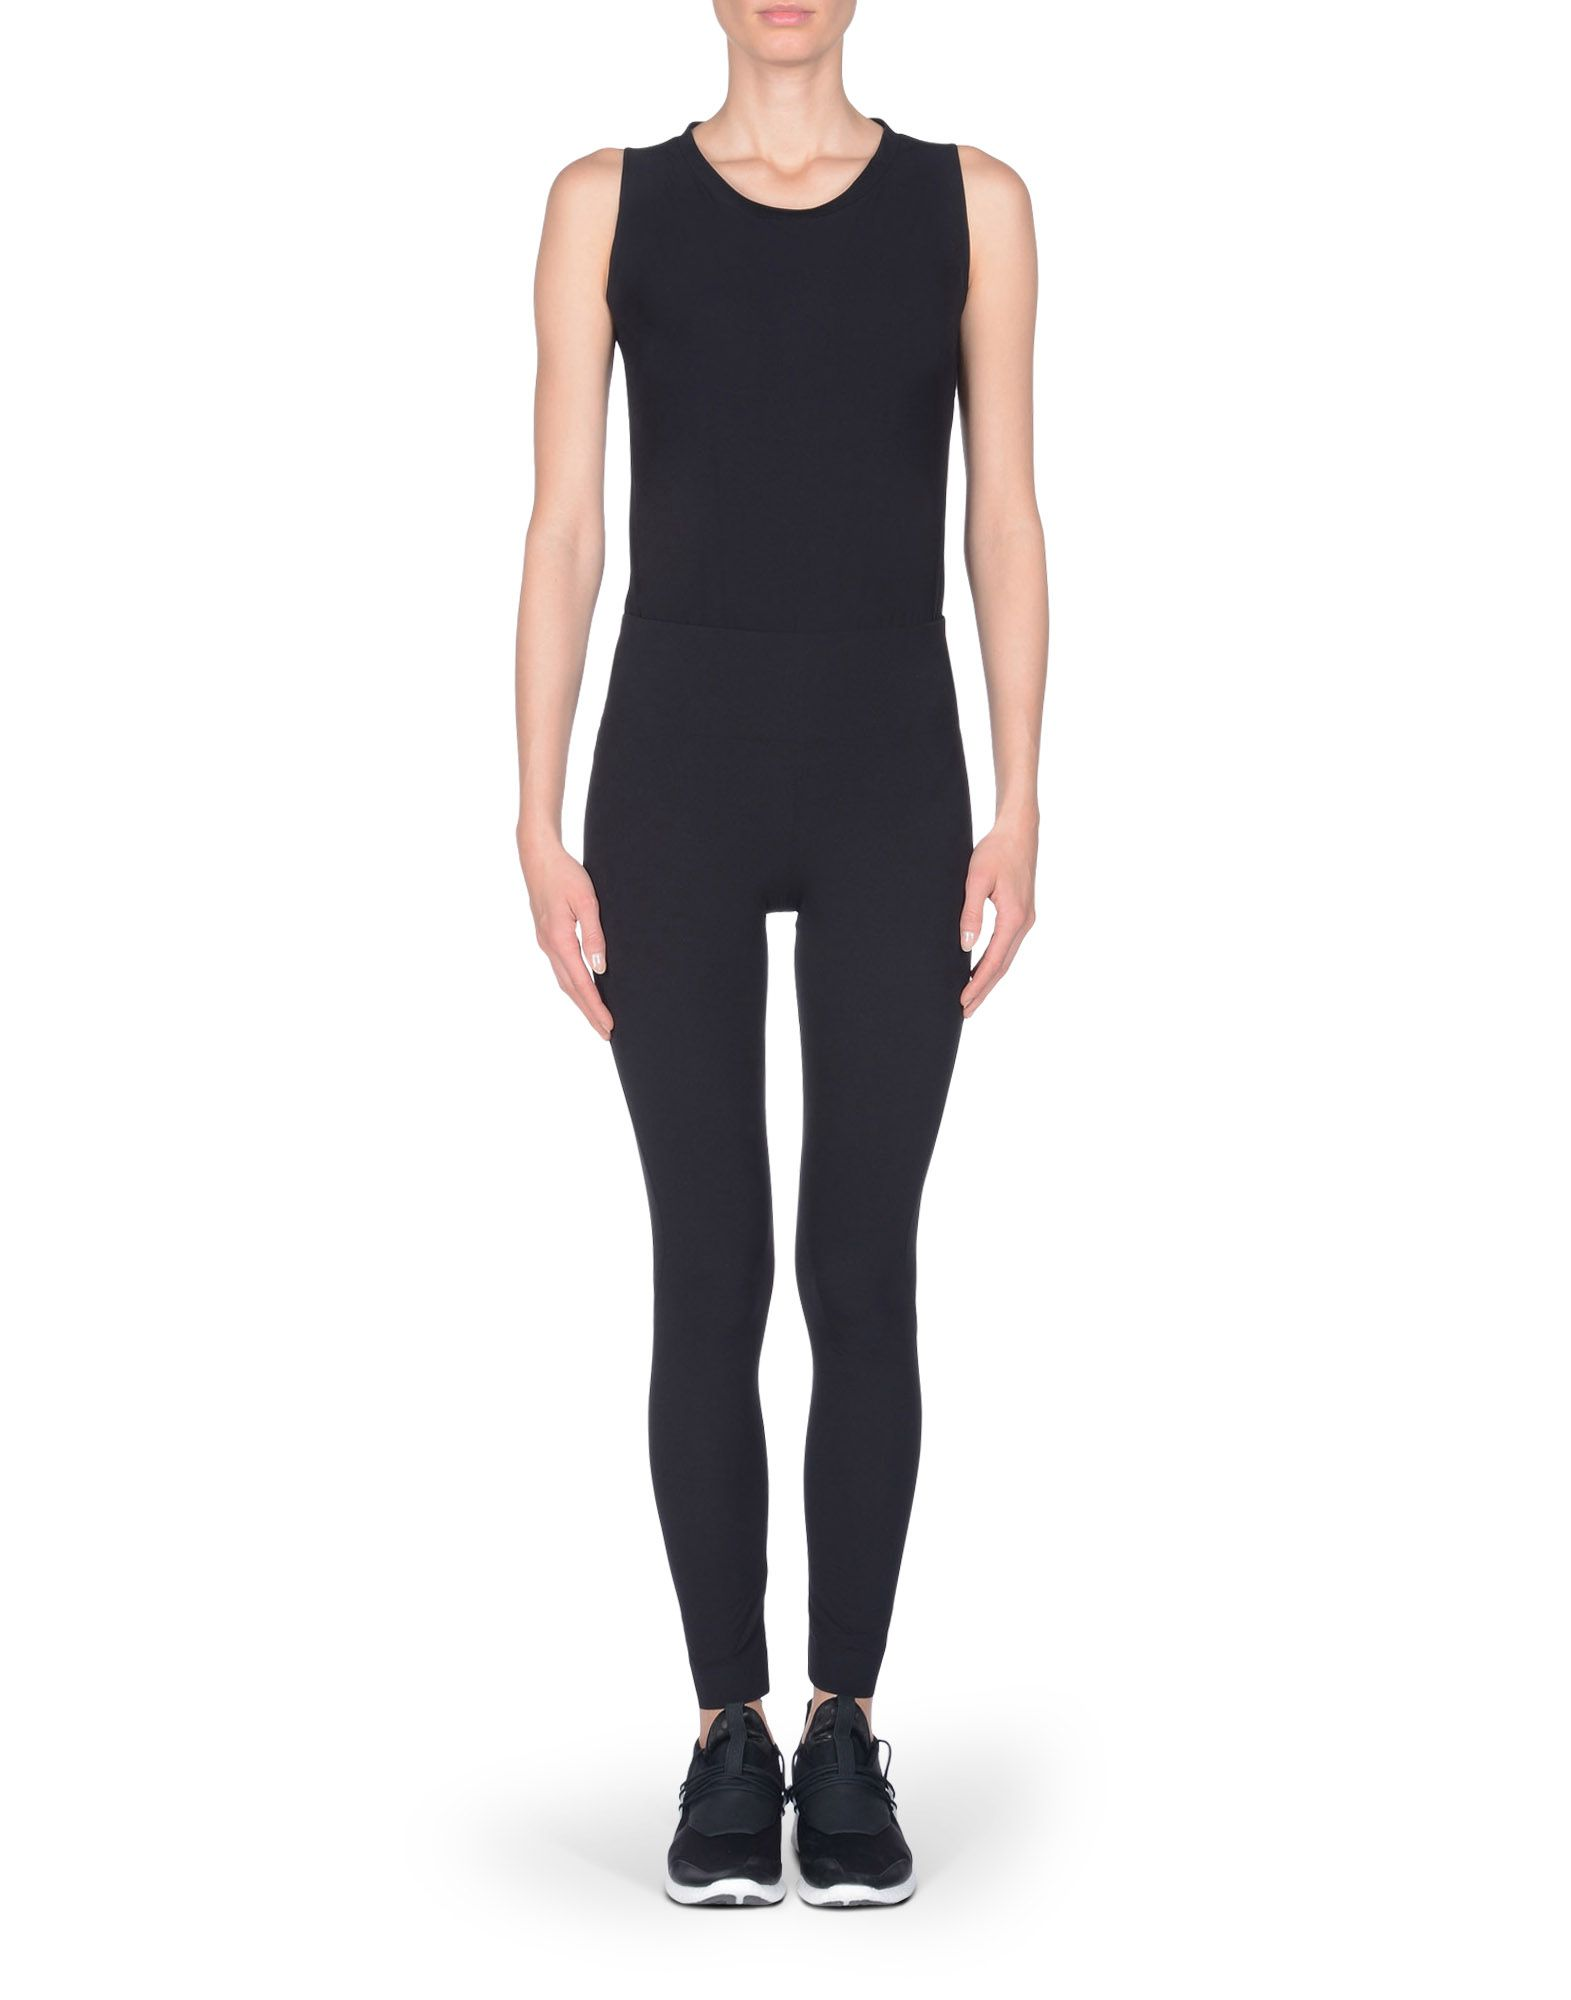 Y-3 LIGHT STRETCH BODY TEE UNDERWEAR woman Y-3 adidas